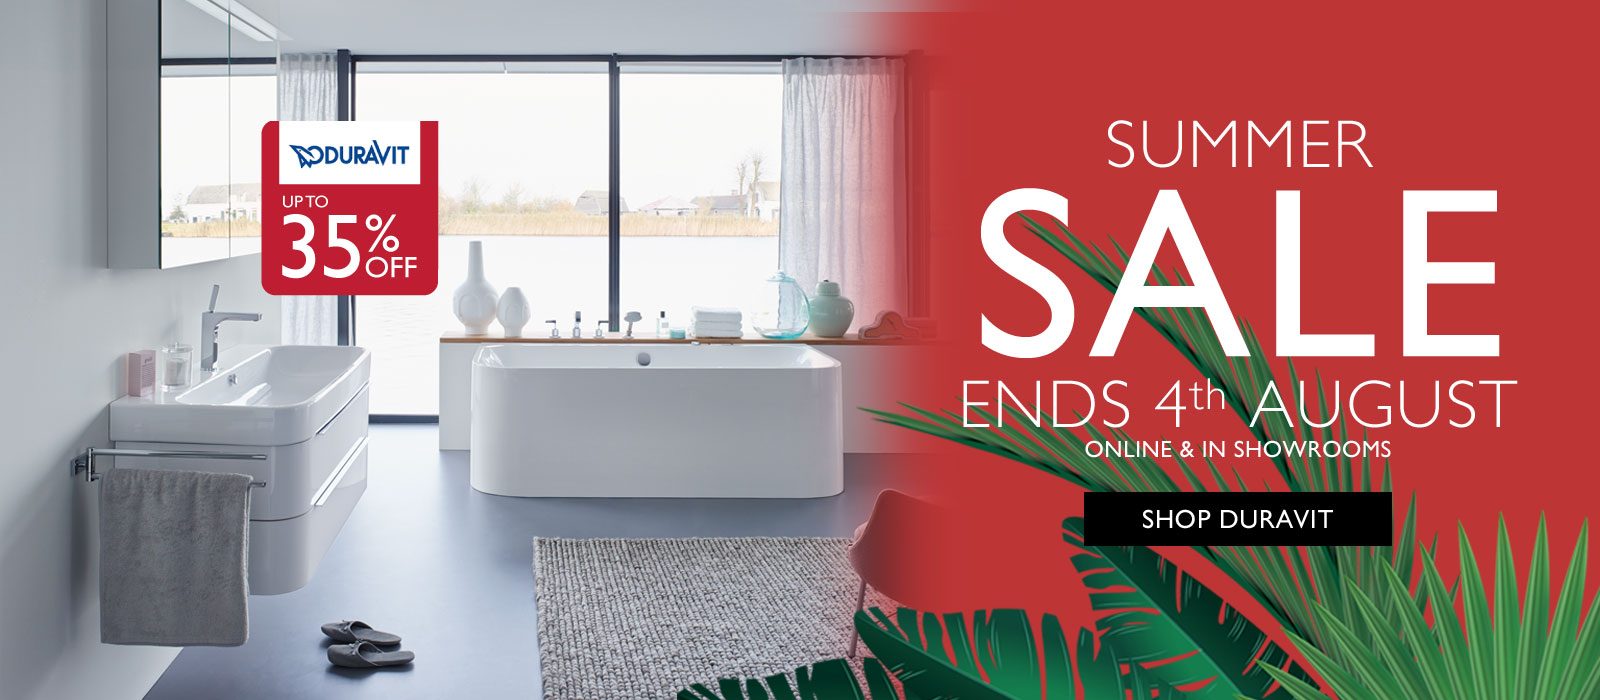 Save up to 35% off Duravit